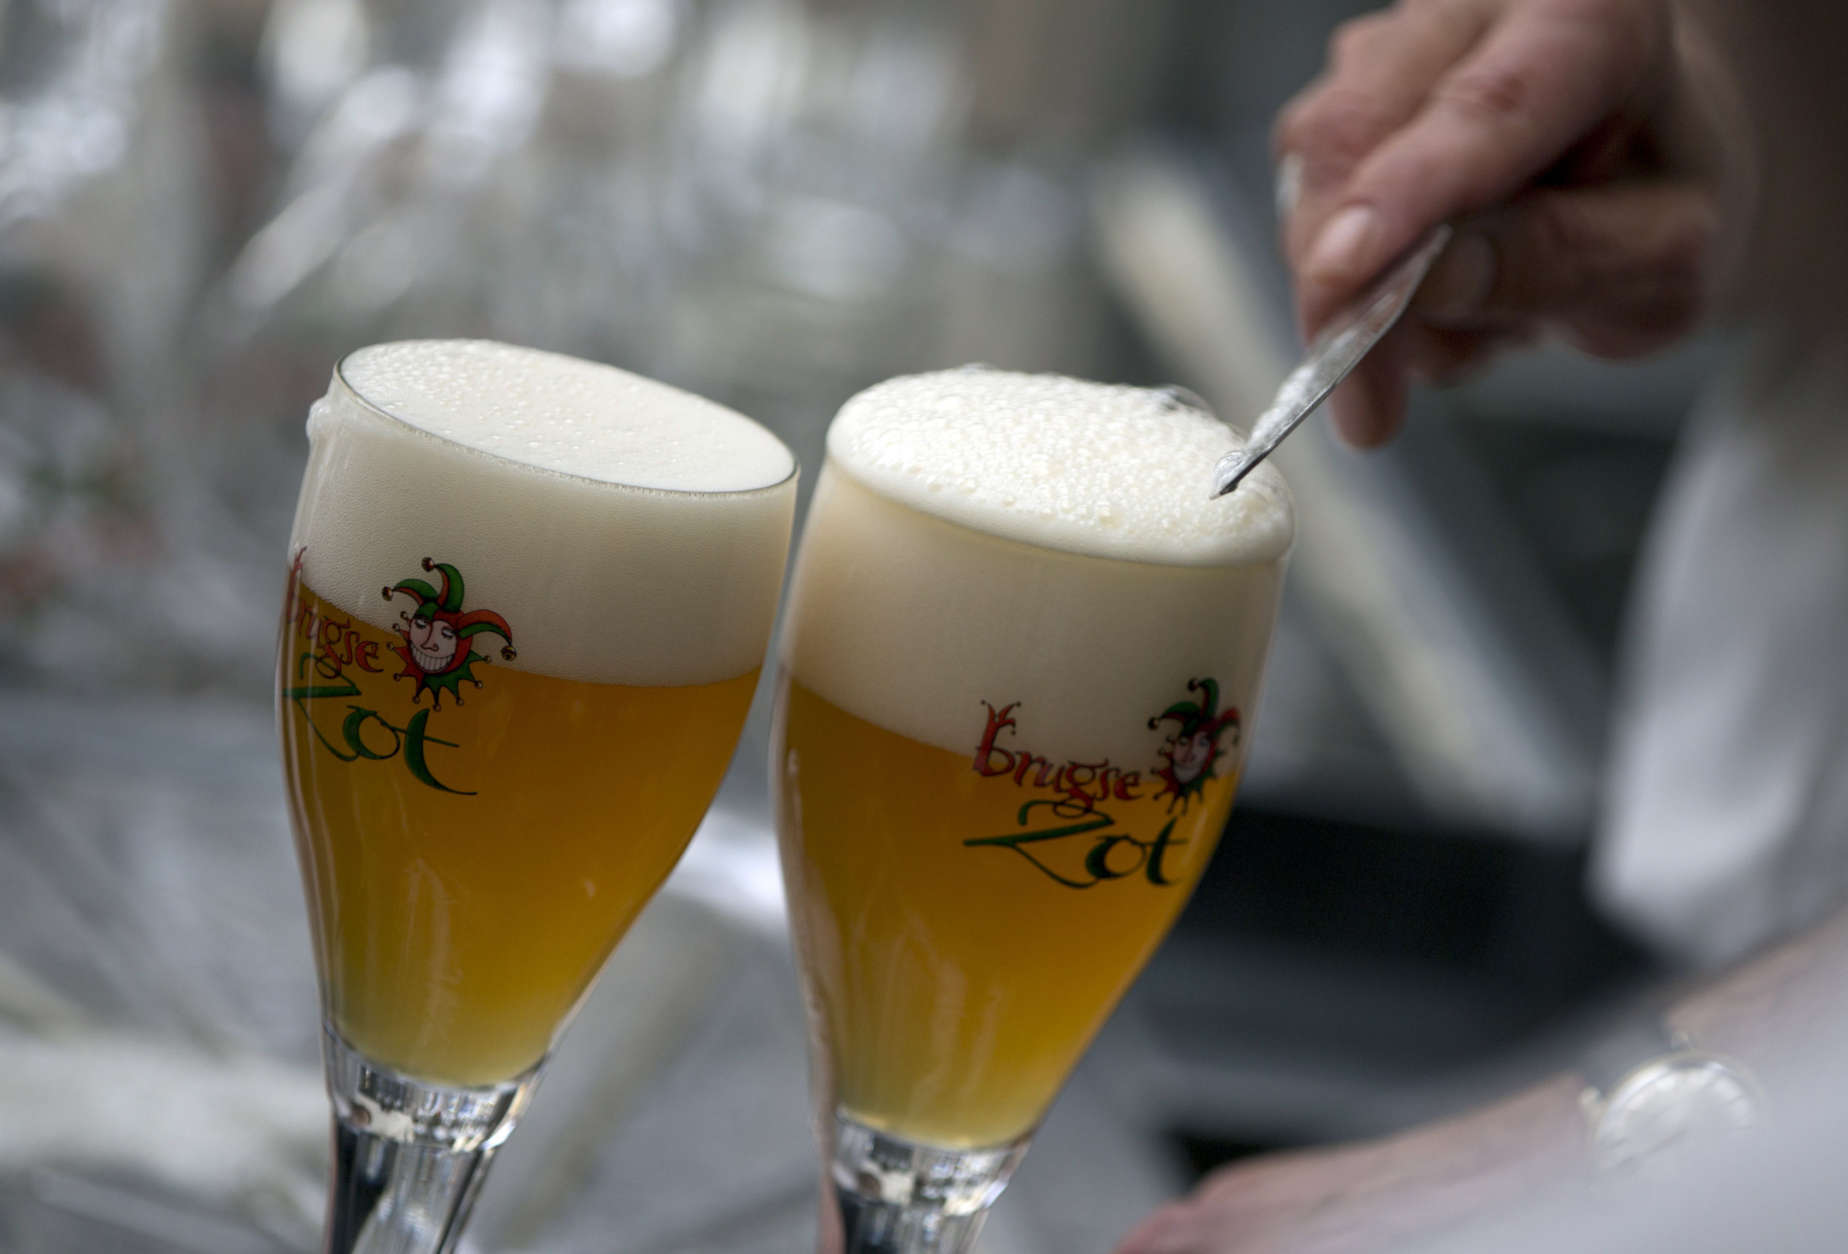 A workers scrapes the foam off of a glass of Brugse Zot beer before serving it at the Halve Maan Brewery in Bruges, Belgium on Thursday, May 26, 2016. The brewery has recently created a beer pipeline which will ship beer straight from the brewery to the bottling plant, two kilometers away, through underground pipes running between the two sources. (AP Photo/Virginia Mayo)